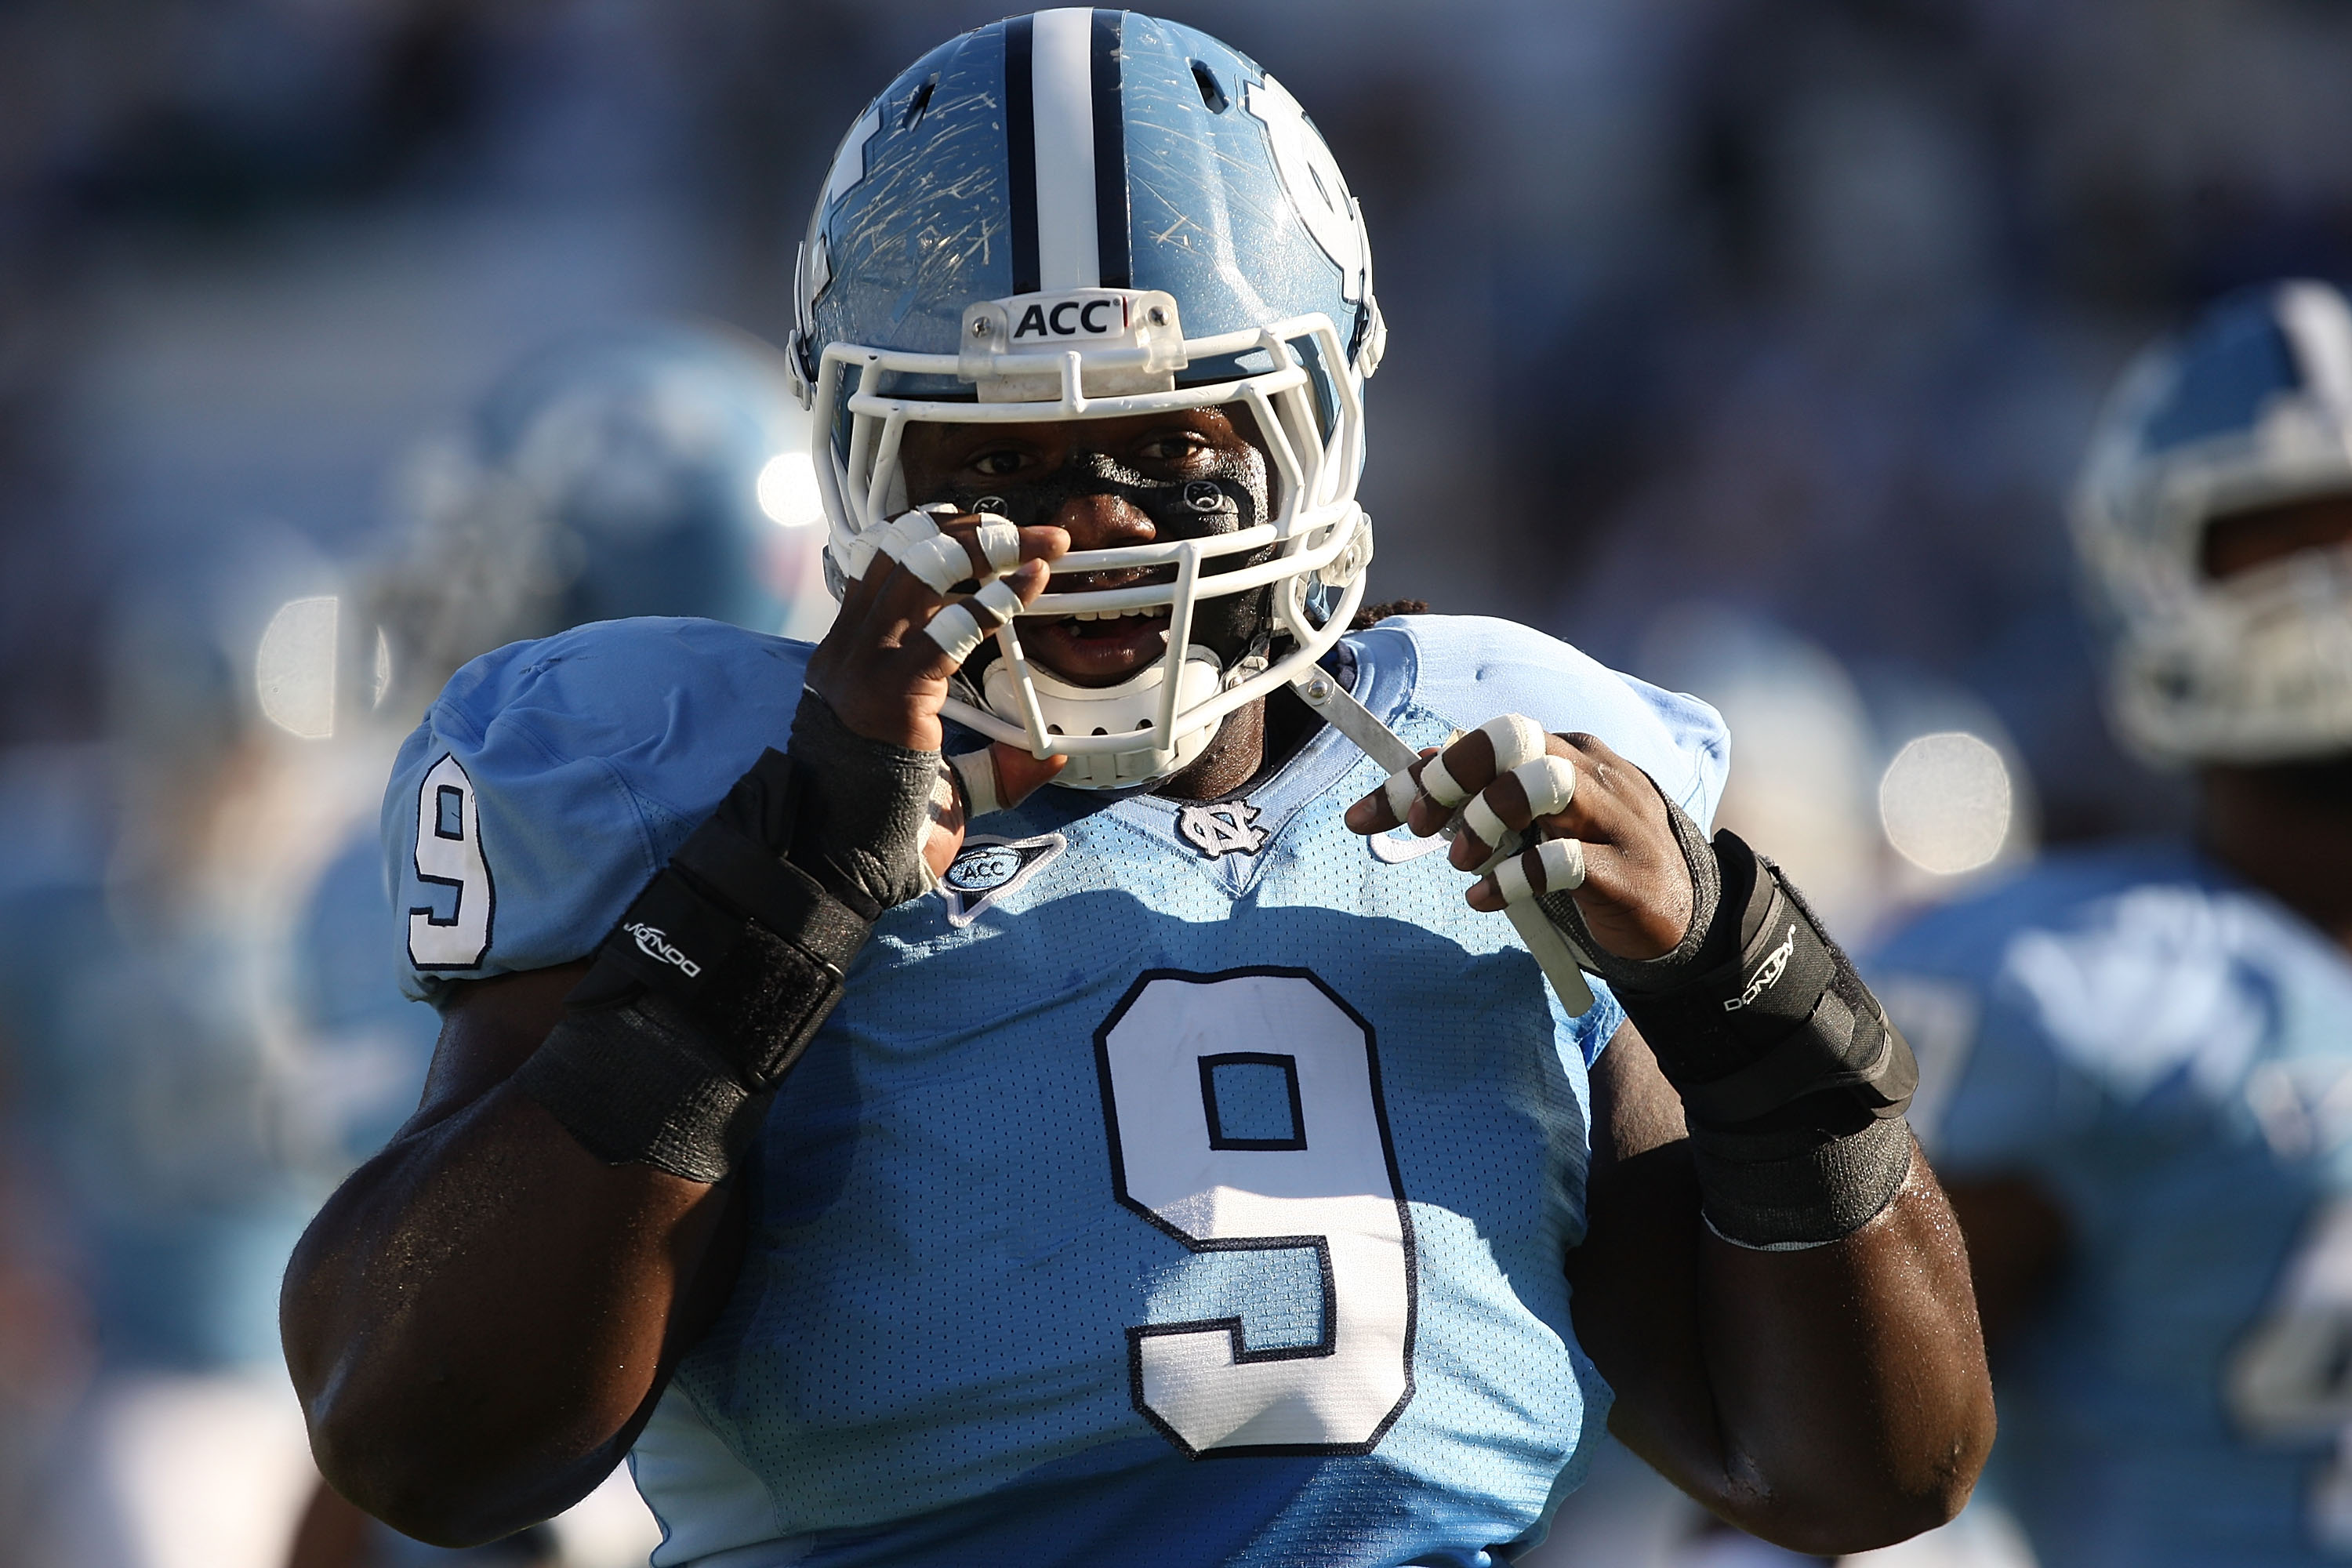 CHAPEL HILL, NC - NOVEMBER 07:  Marvin Austin #9 of the North Carolina Tar Heels watches on against the Duke Blue Devils during their game at Kenan Stadium on November 7, 2009 in Chapel Hill, North Carolina.  (Photo by Streeter Lecka/Getty Images)